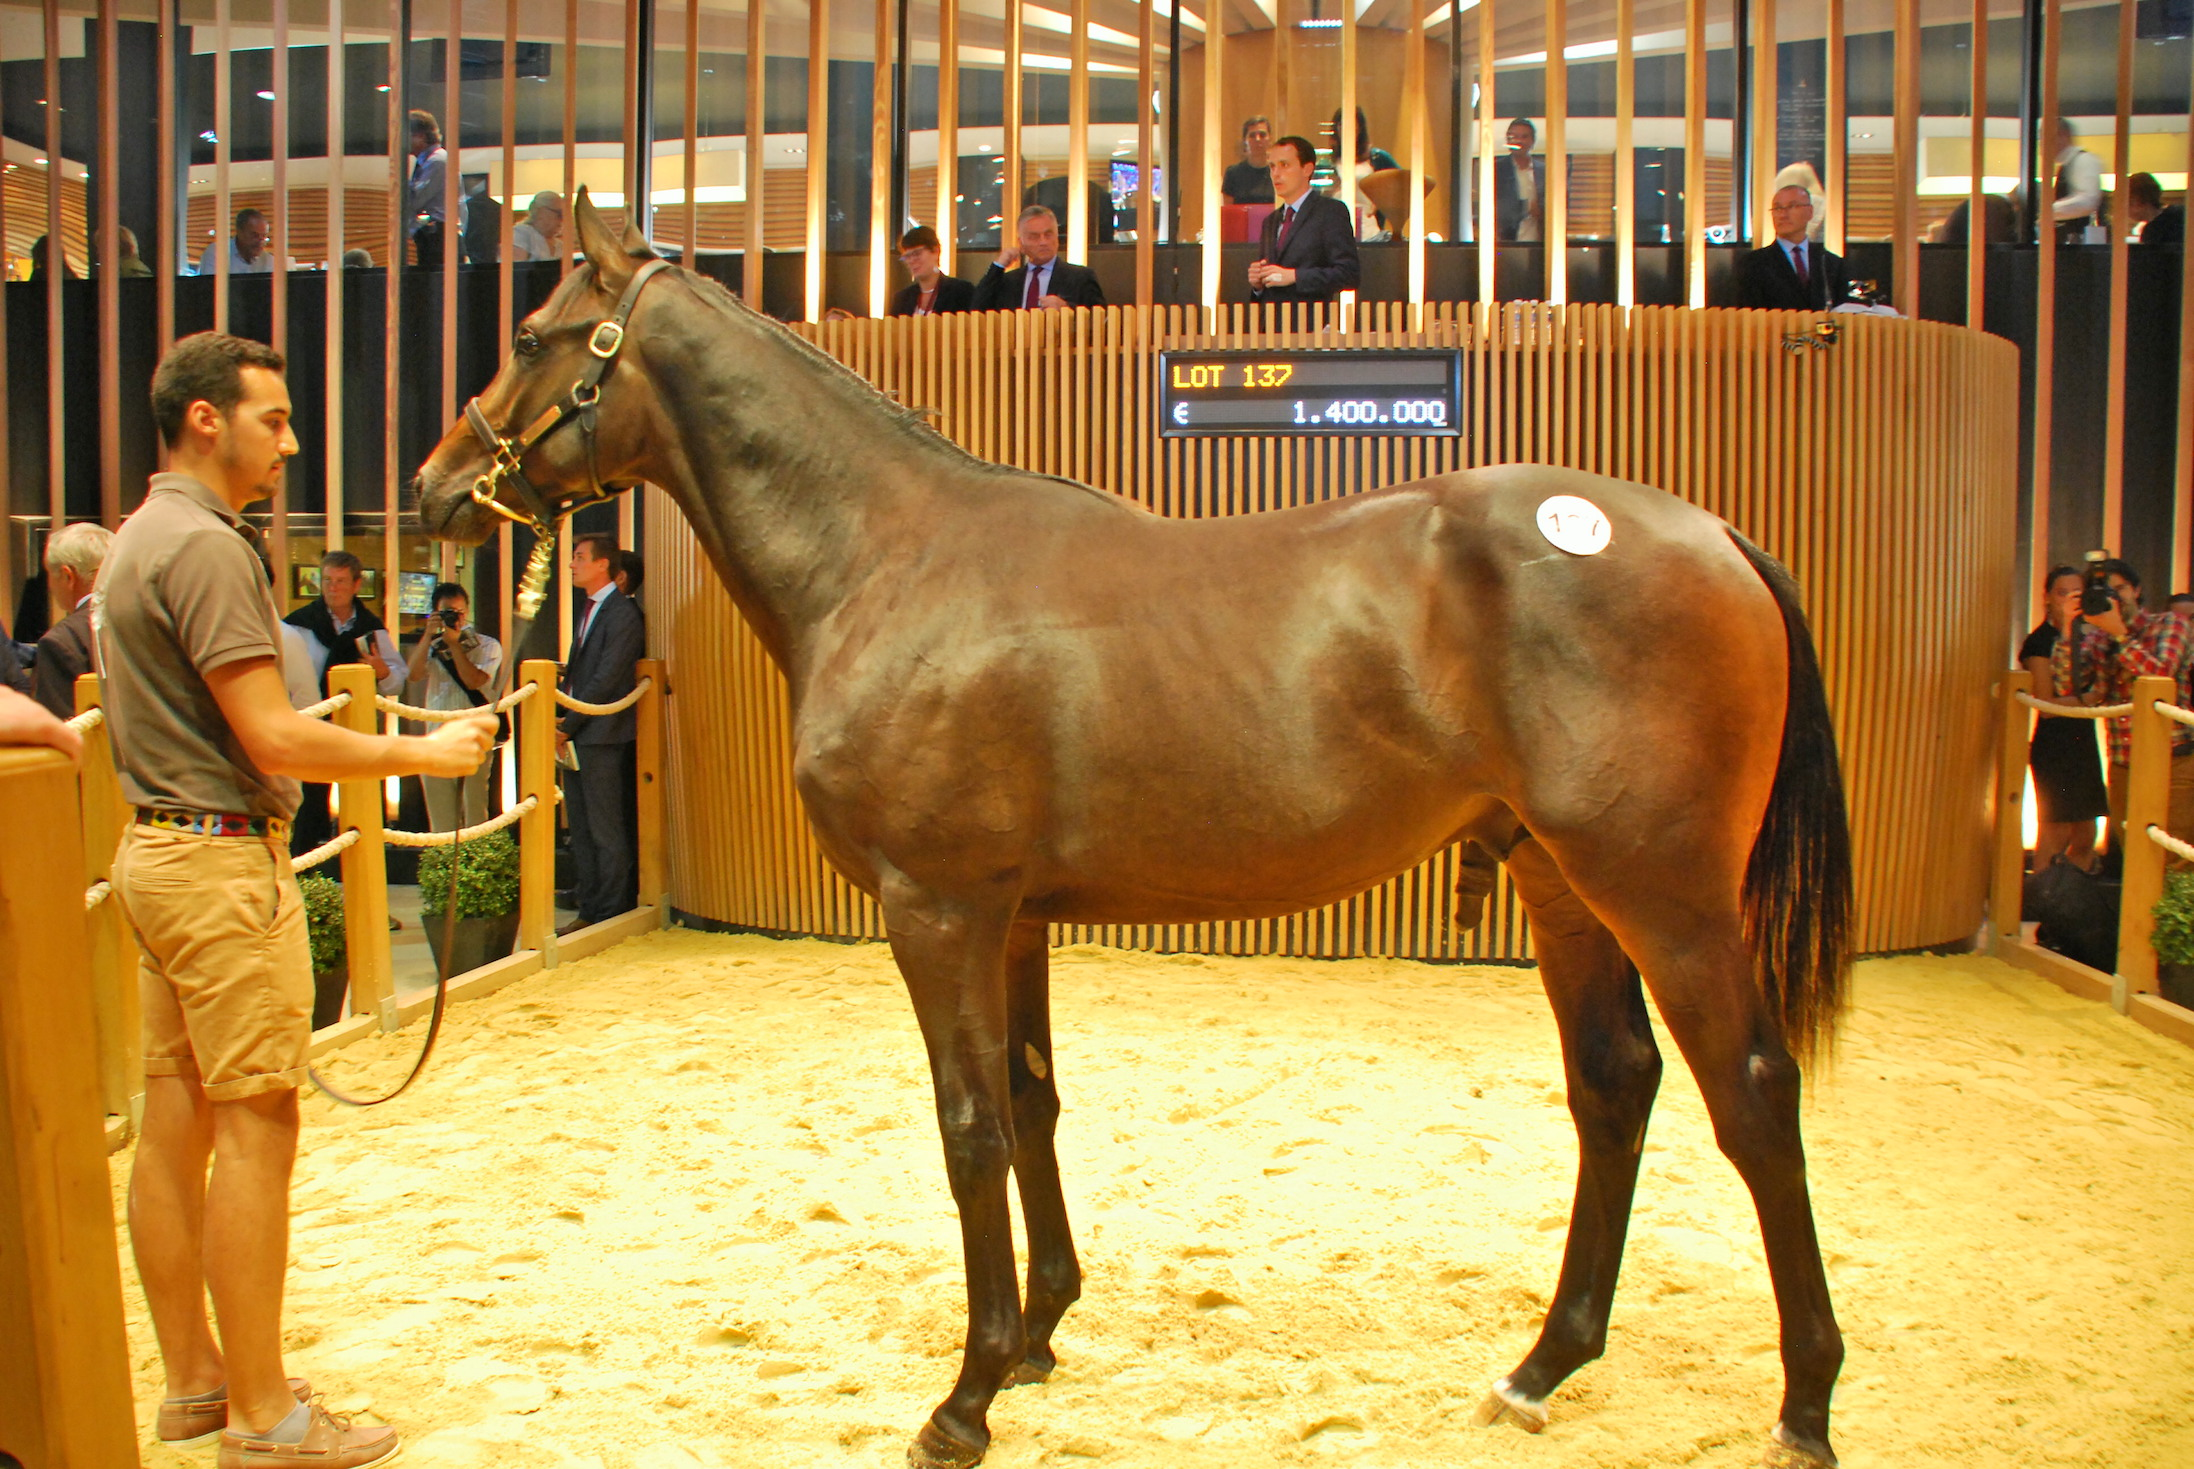 Top lot: at €1.4 million, this Dubawi colt out of Just The Judge was the most expensive  yearling at the sale. He was sold to Ballylinch Stud. Photo: John Gilmore